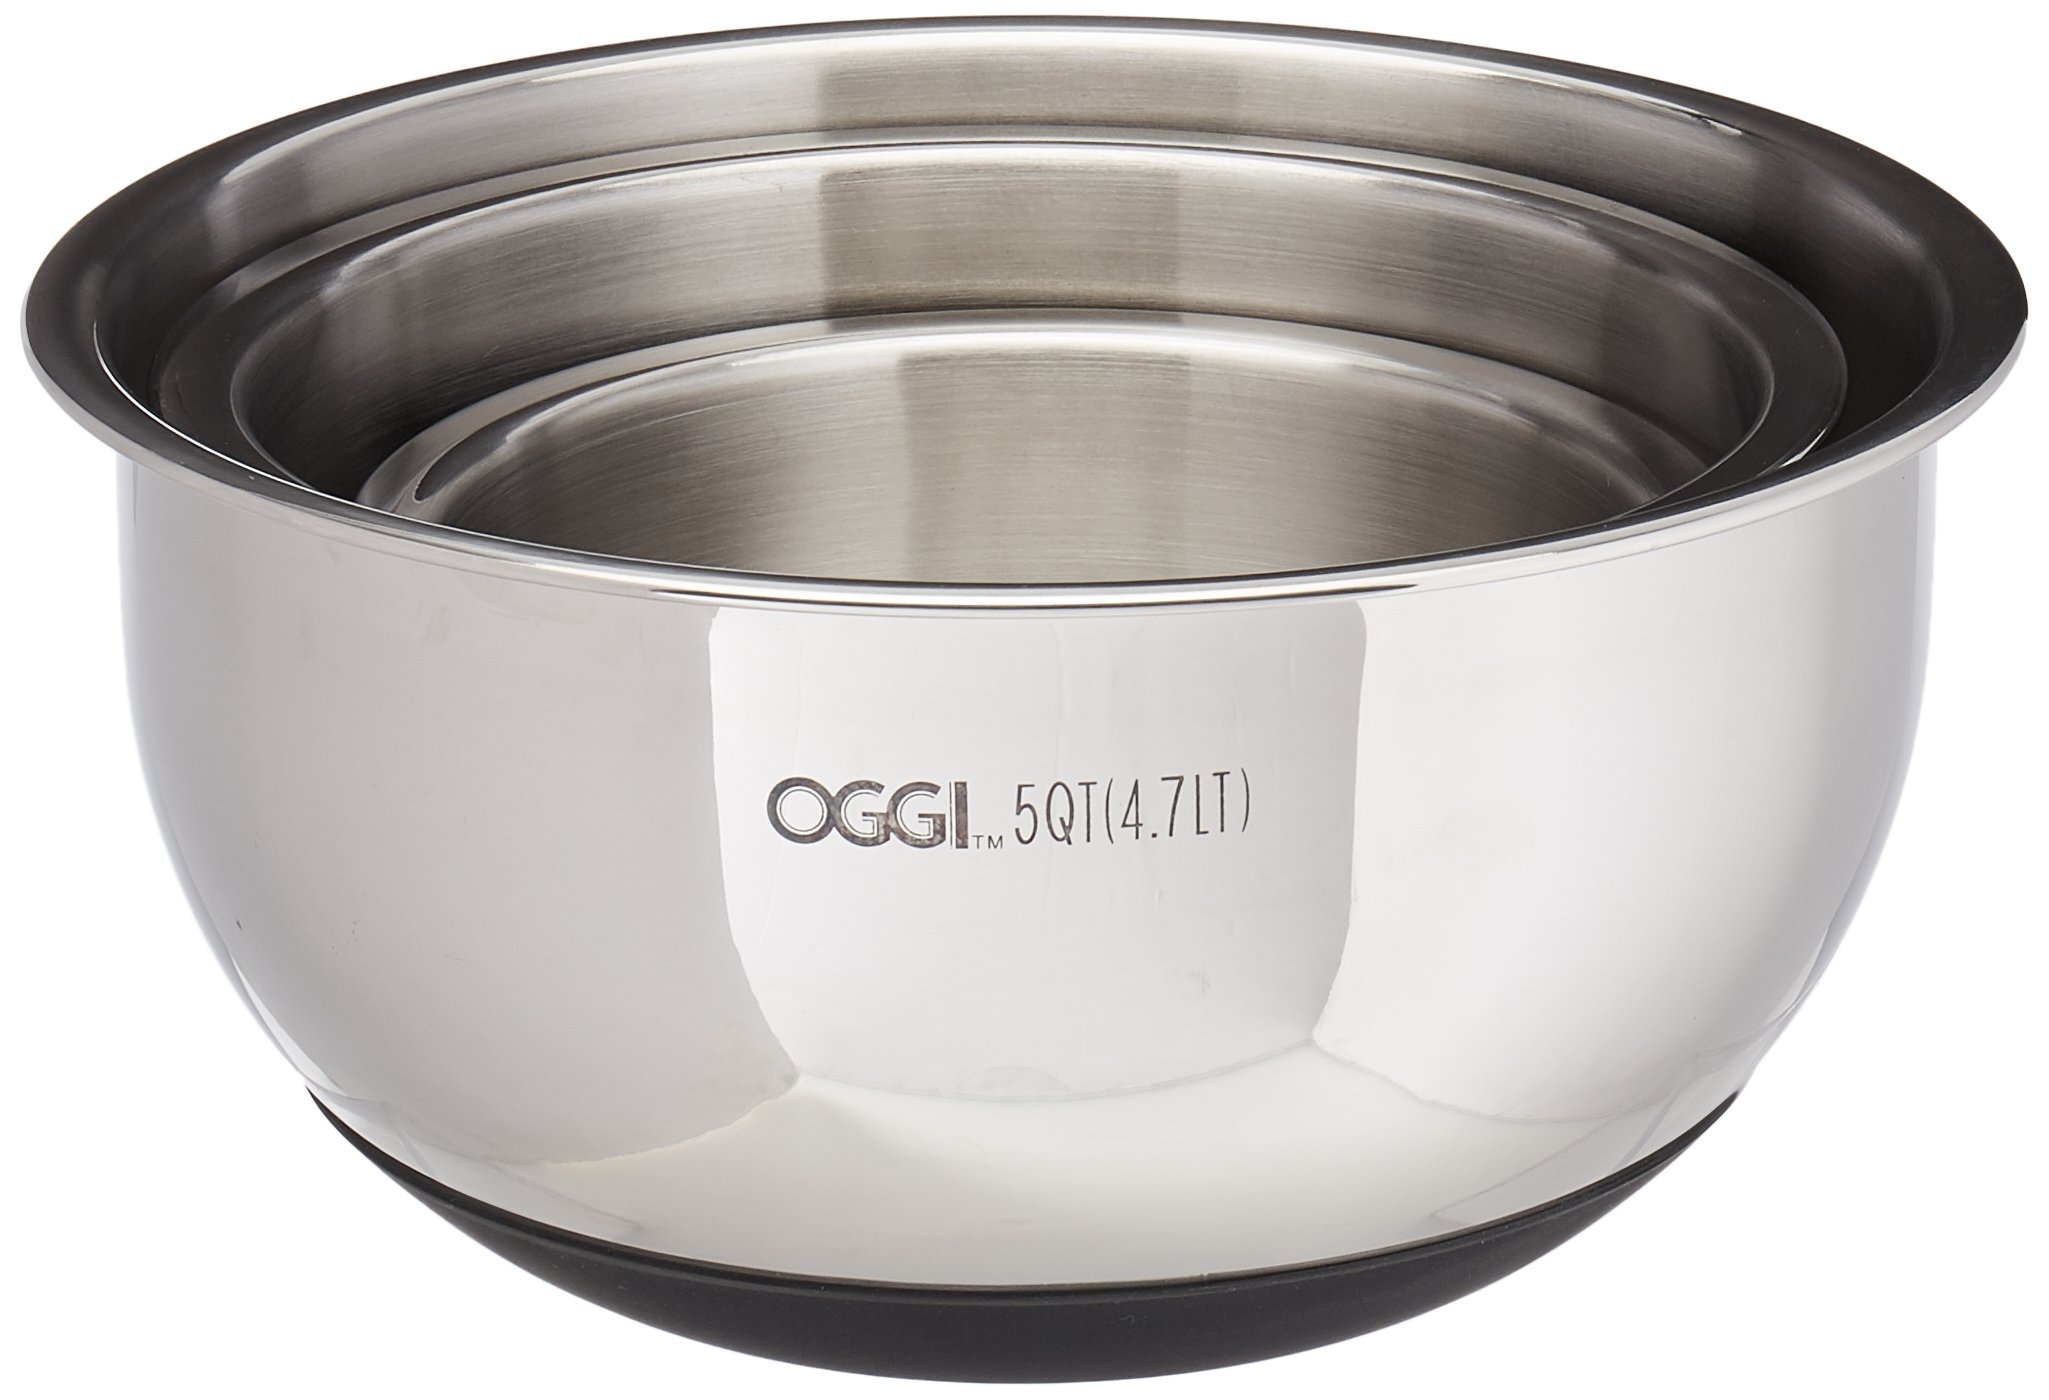 Oggi 7287.0 Stainless Steel 3-Piece Bowl Set with Lids